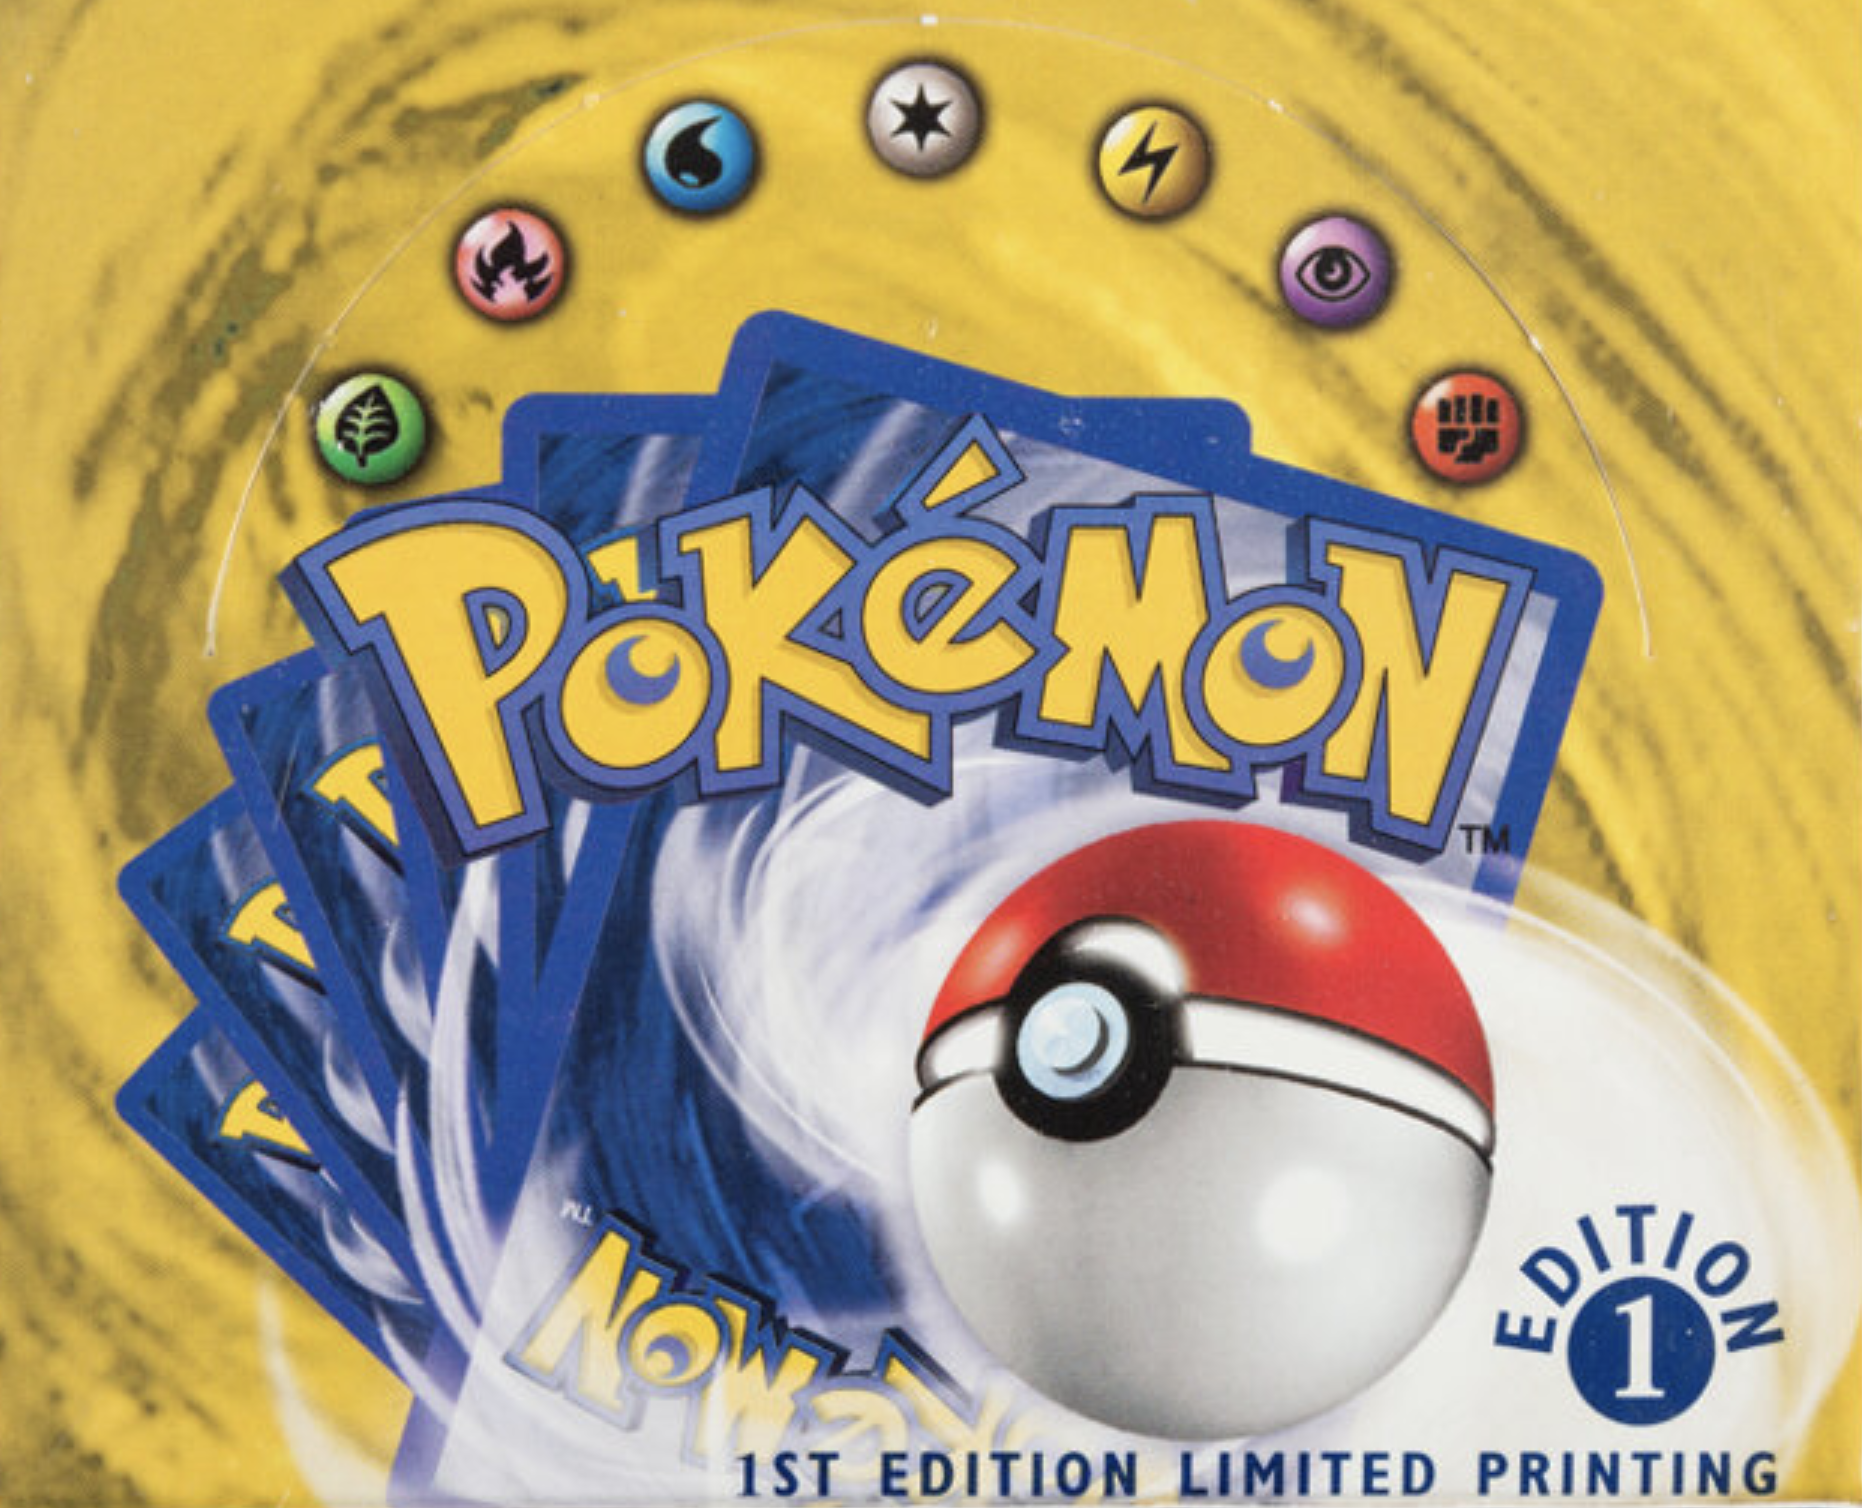 1st Edition Pokémon Cards Sell for $360,000, Showing I Could Have Been Rich